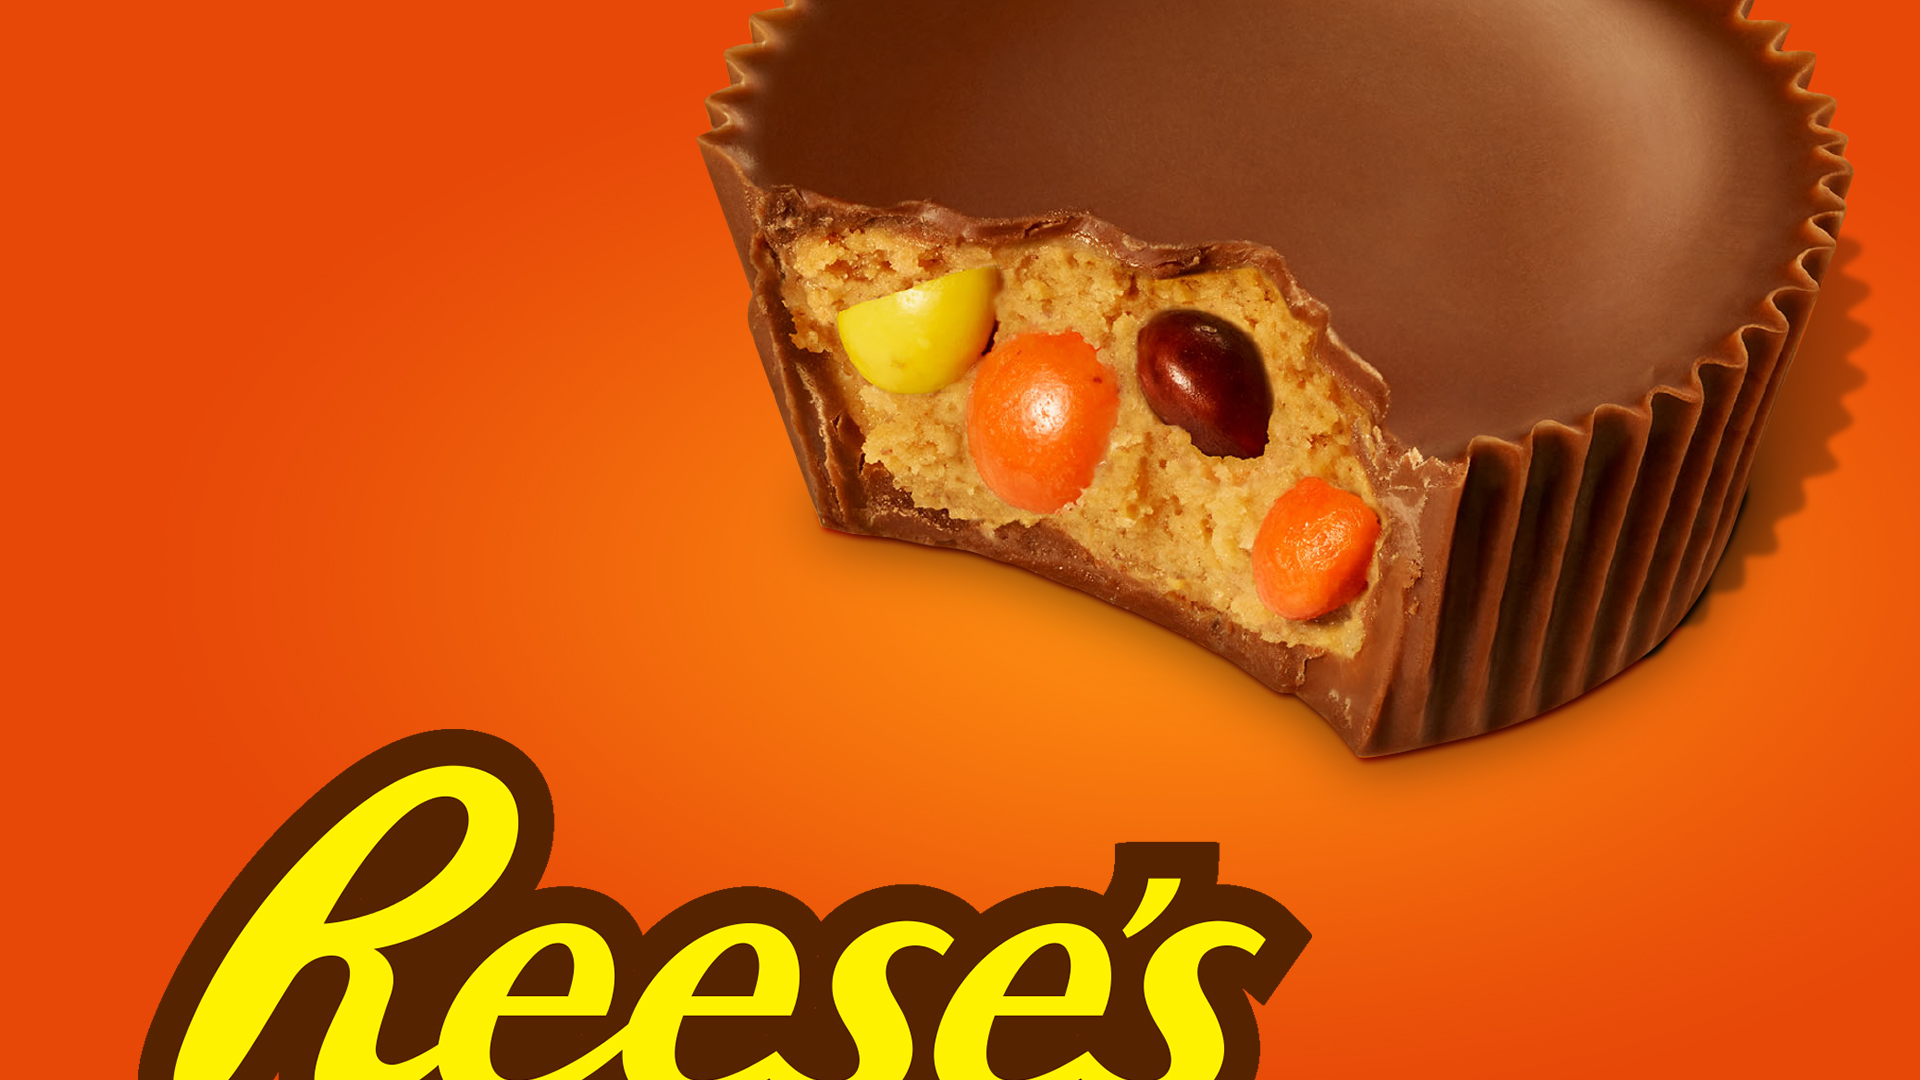 Reeses_ClubReeses_A_07.jpg